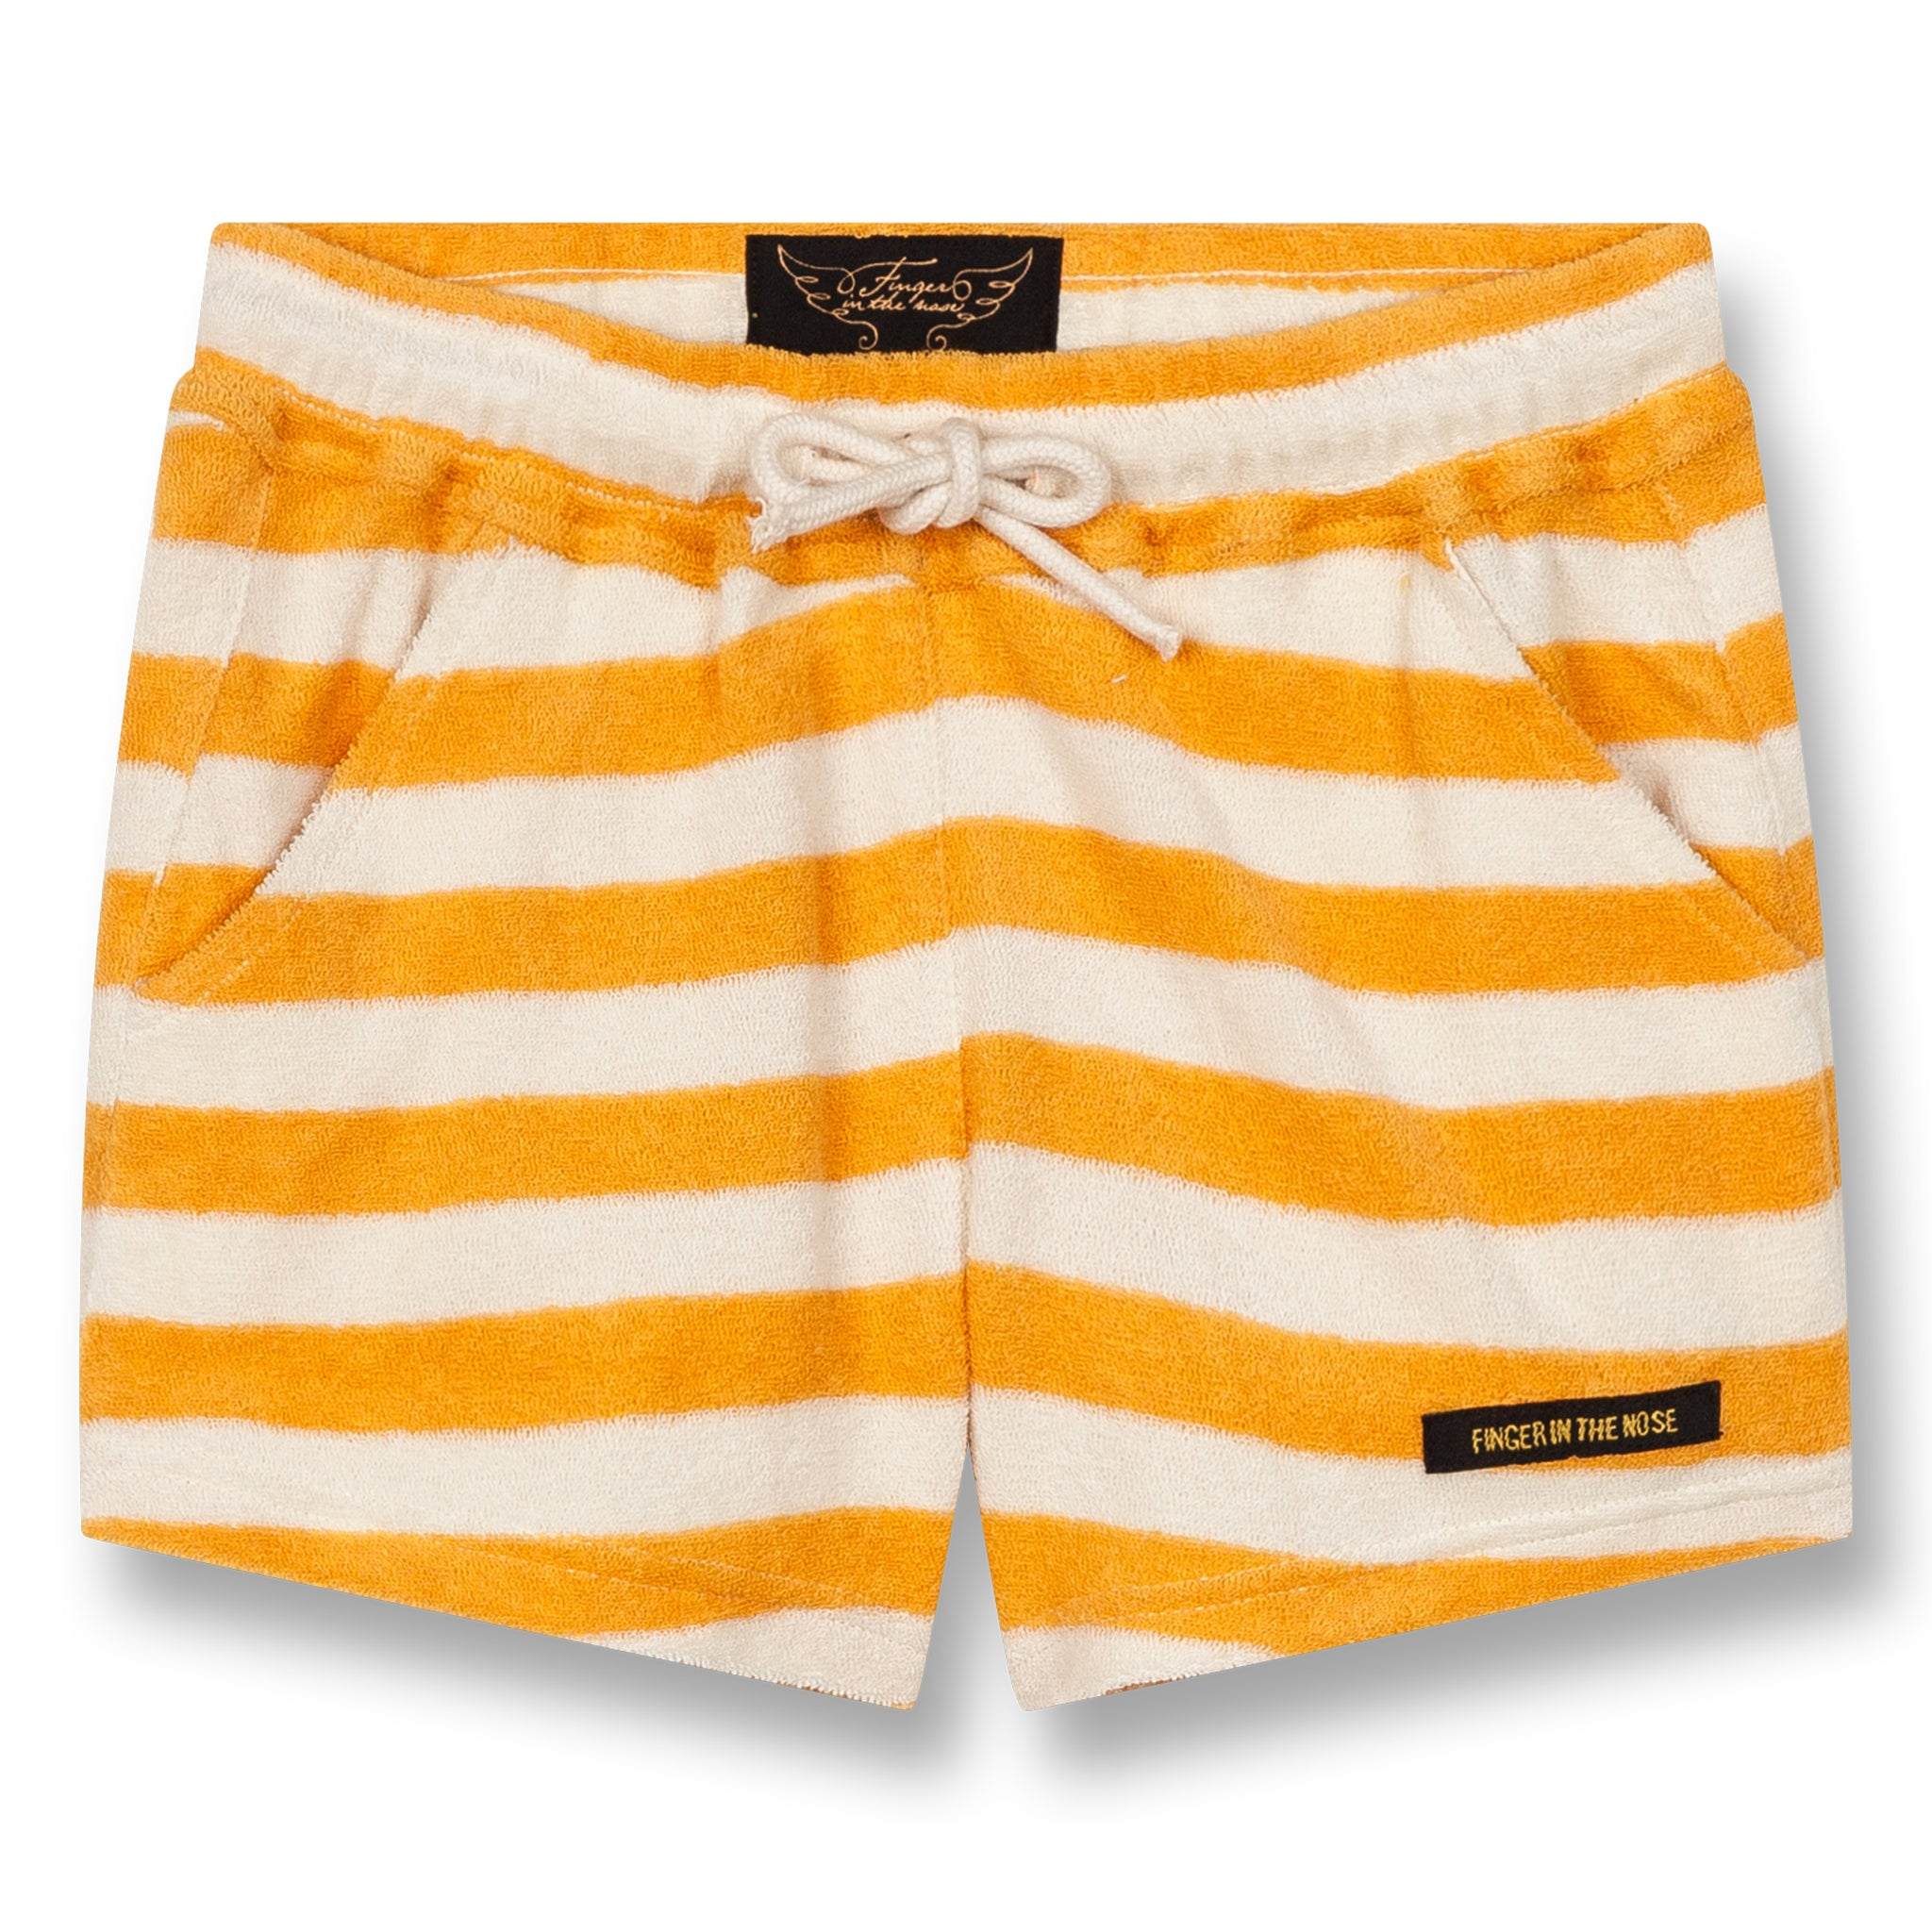 TRINITY Mandarin Stripes - Mini Shorts 1